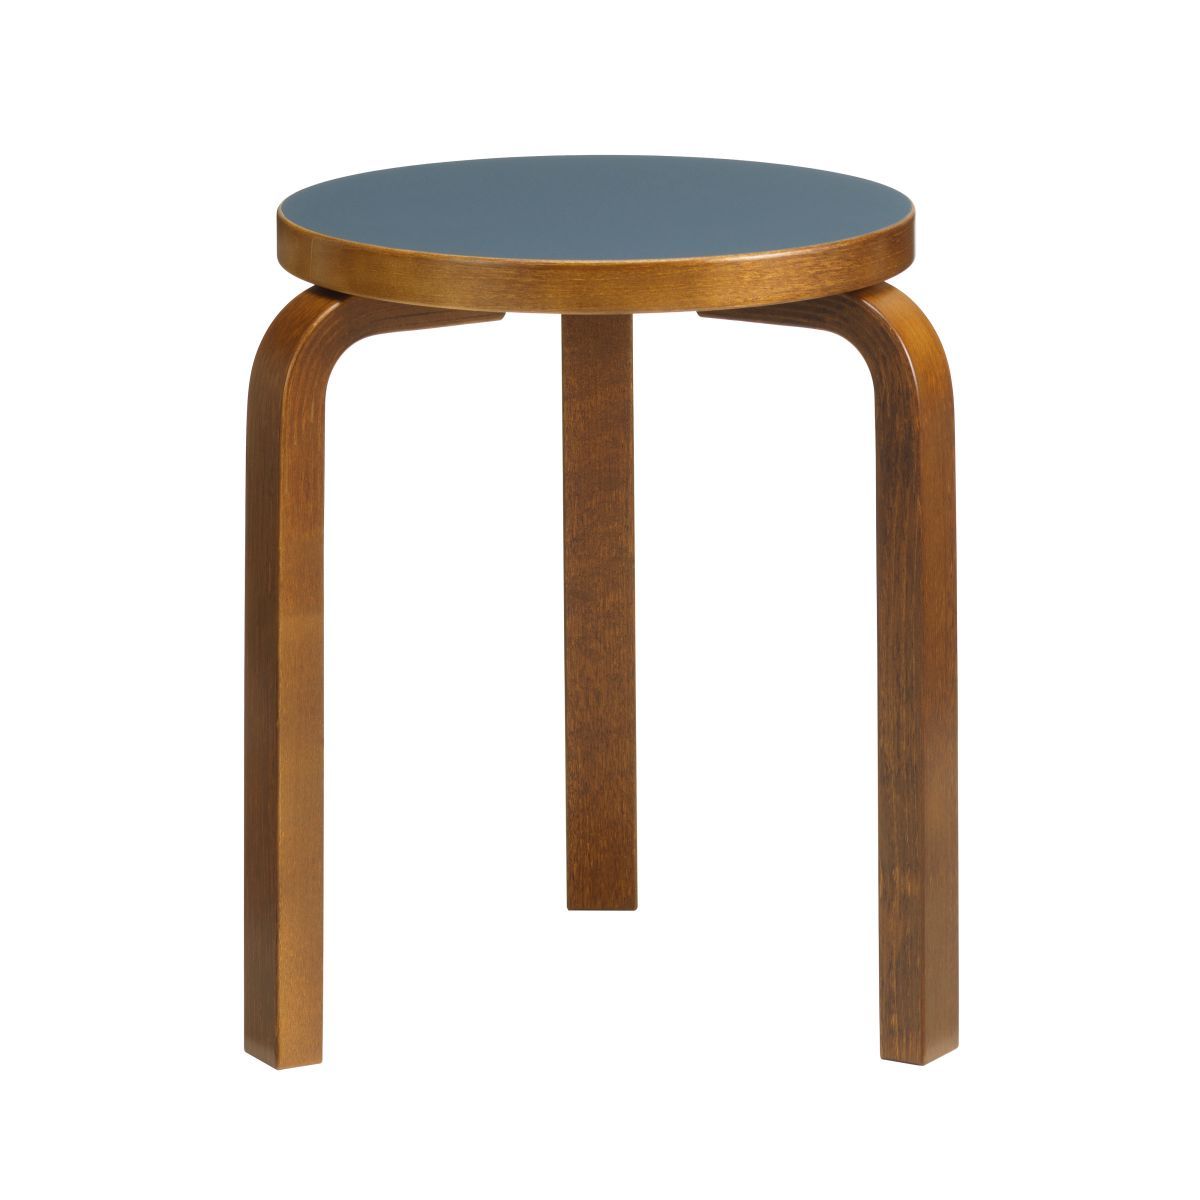 Stool_60_walnut_stain_blue_linoleum_F